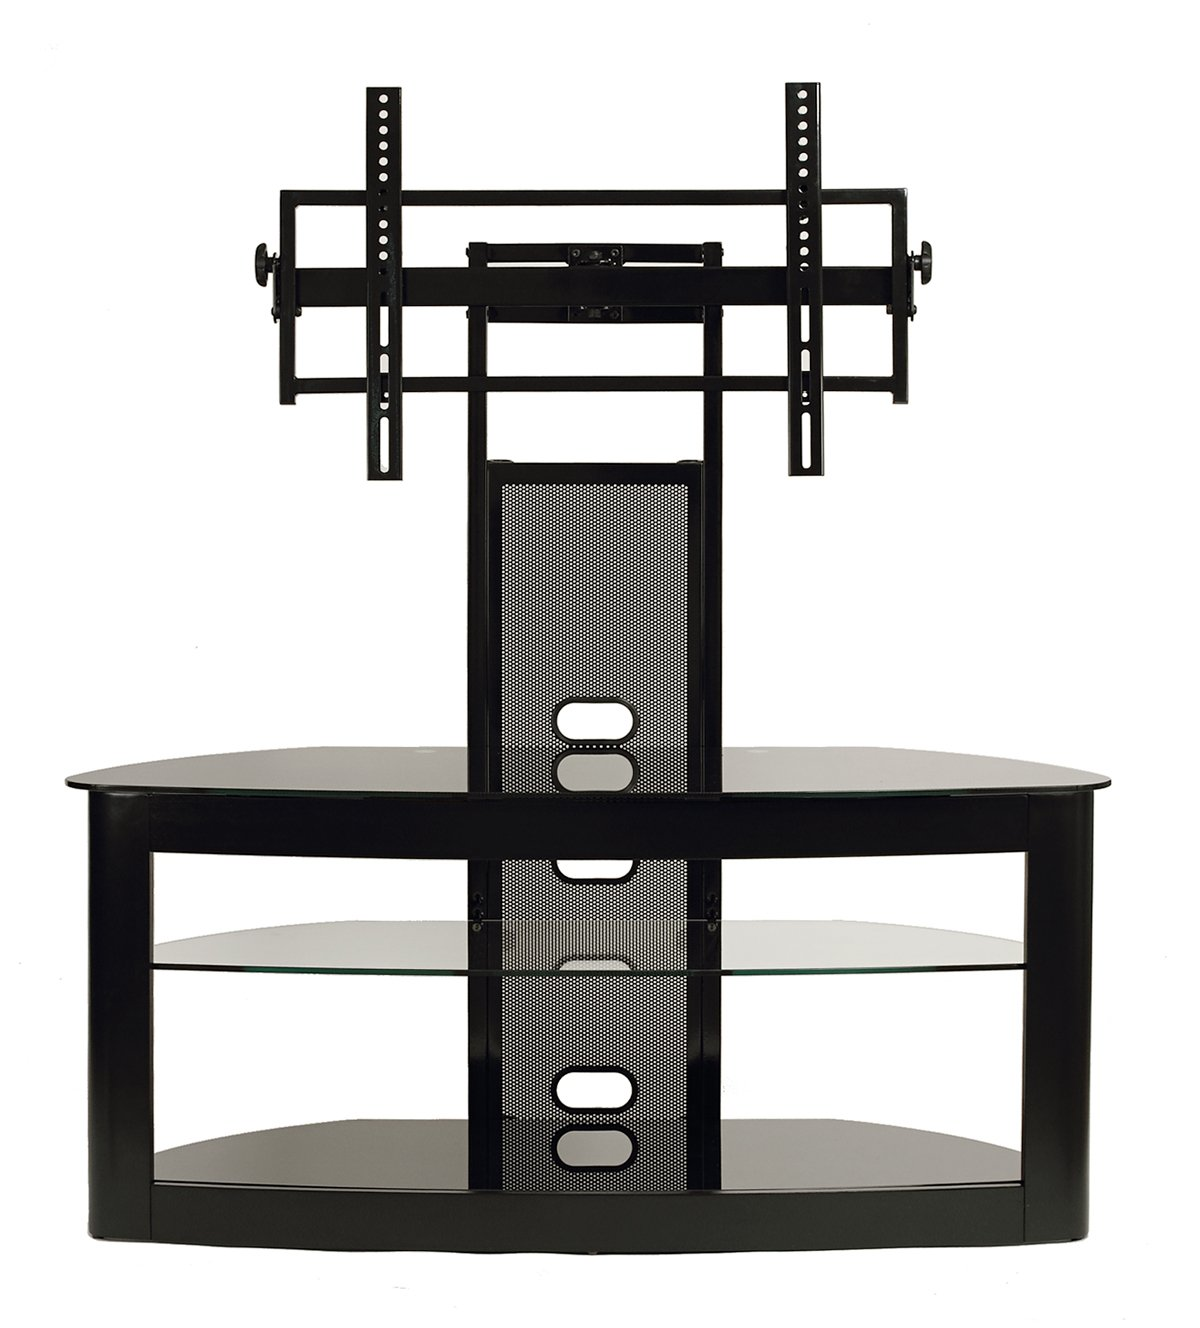 TransDeco LCD TV Stand with Universal Mounting System for 35 to 65-Inch Flat Panel TV by TransDeco (Image #1)